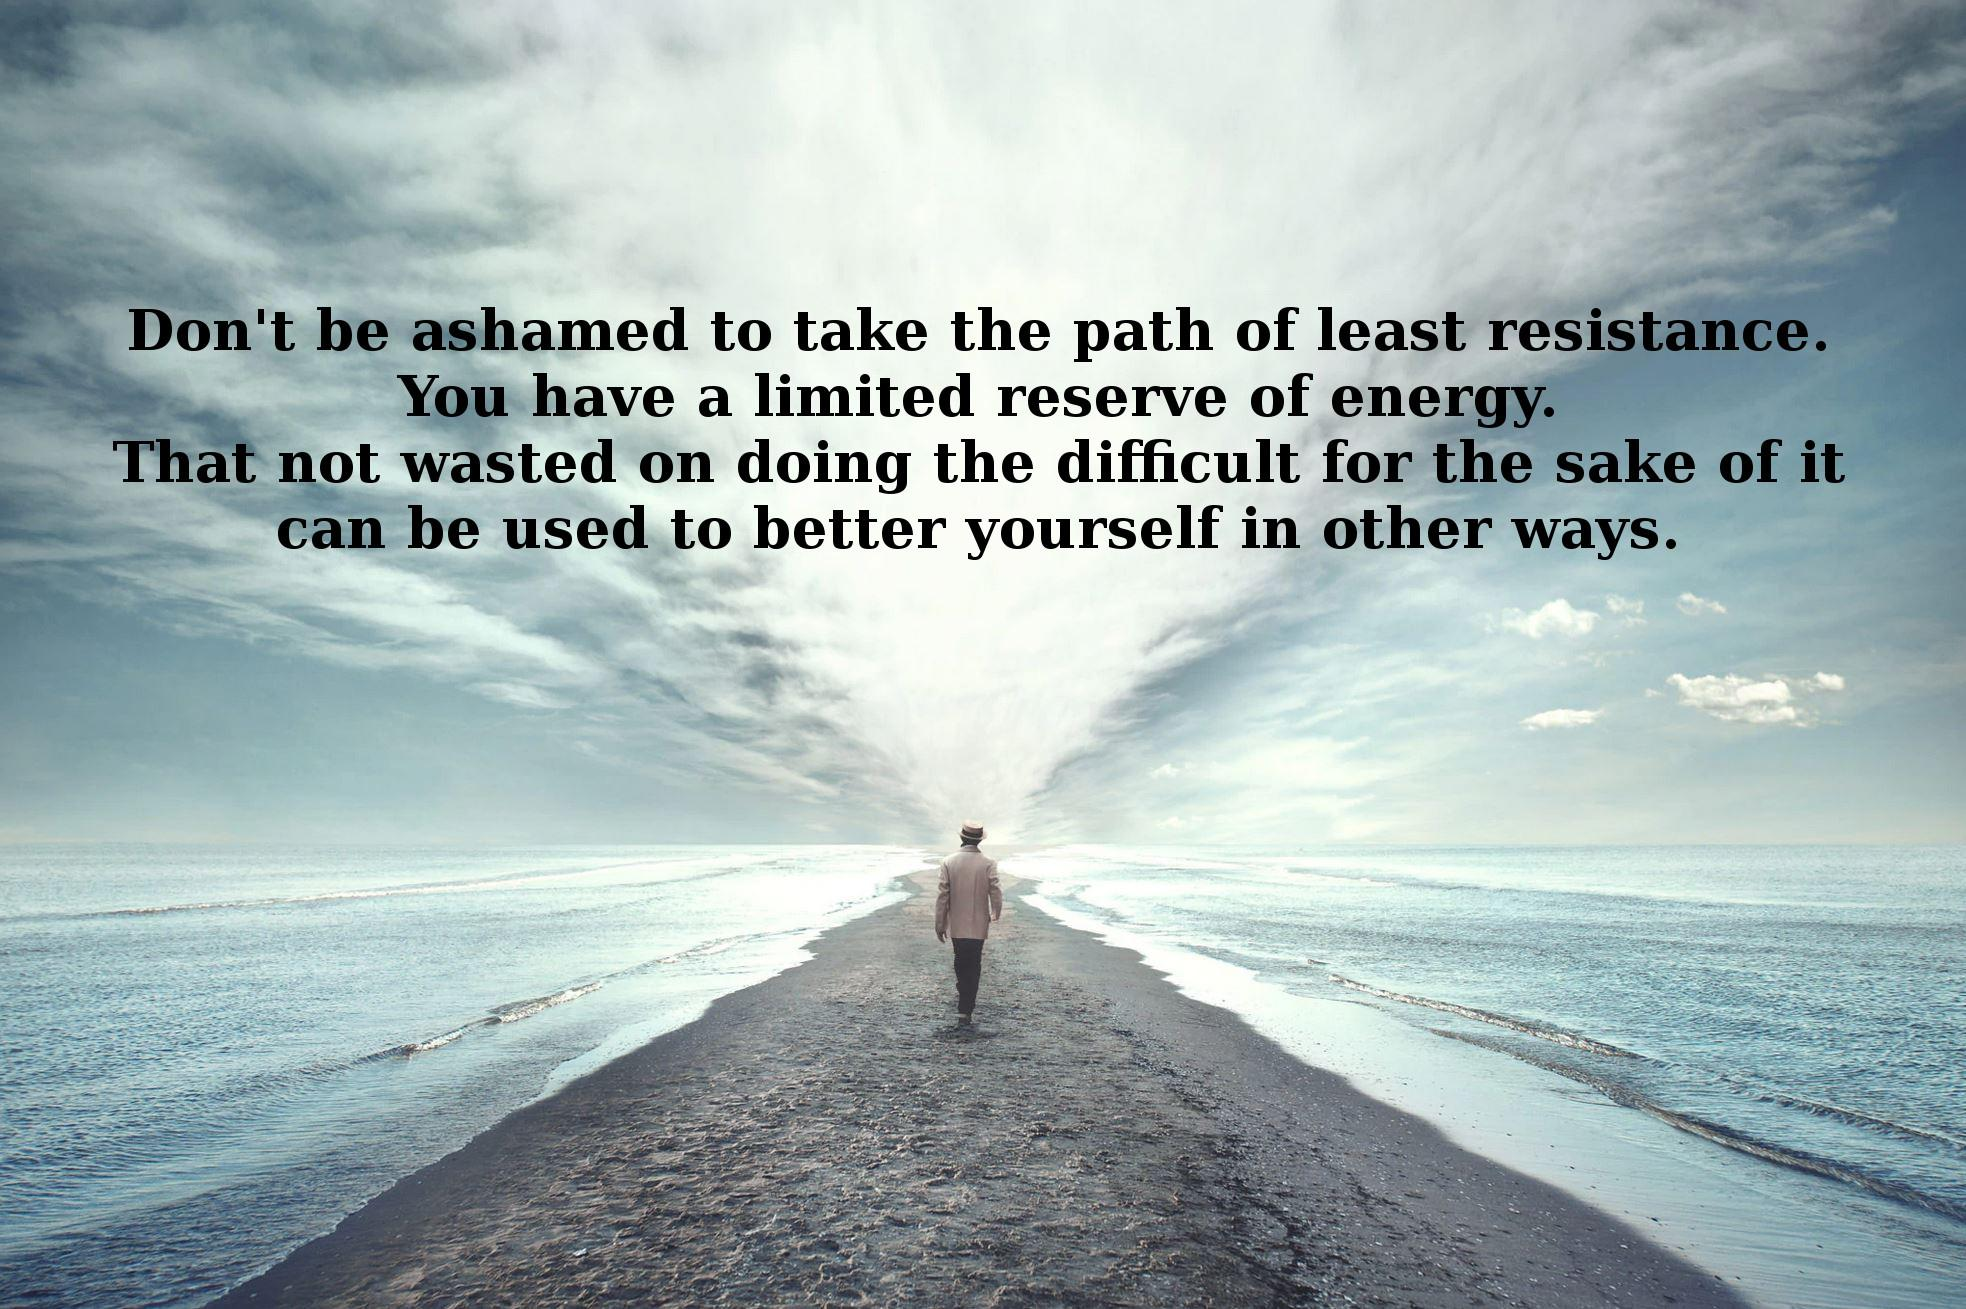 [Image] Path of Least Resistance